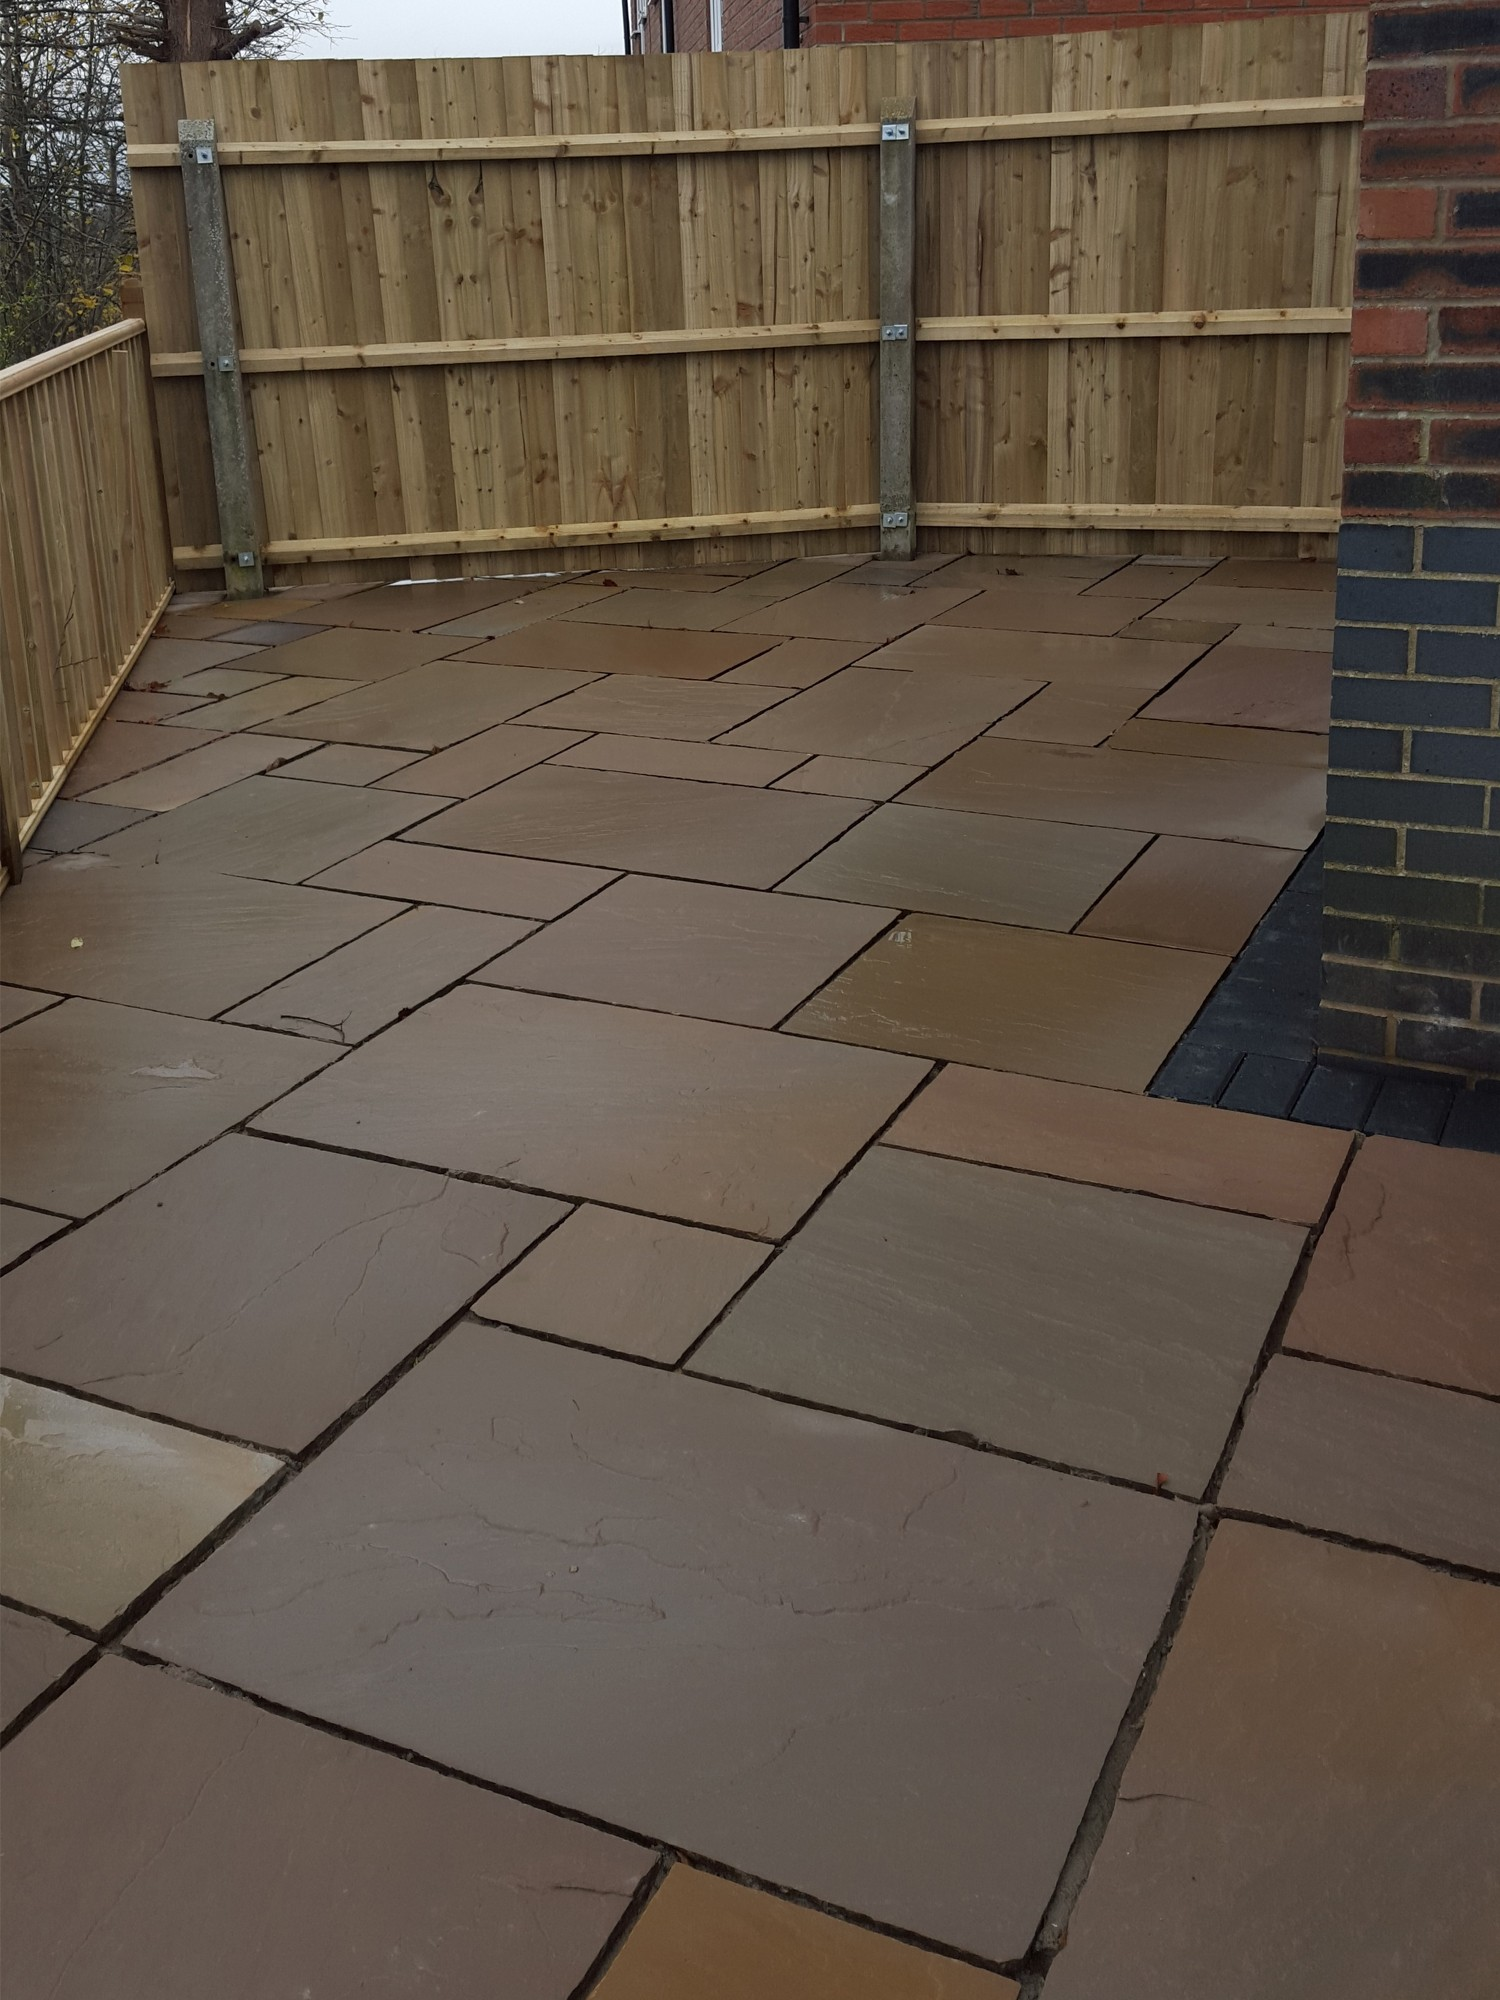 Autumn Brown Indian Sandstone Paving Slabs - Mix Size Patio Pack